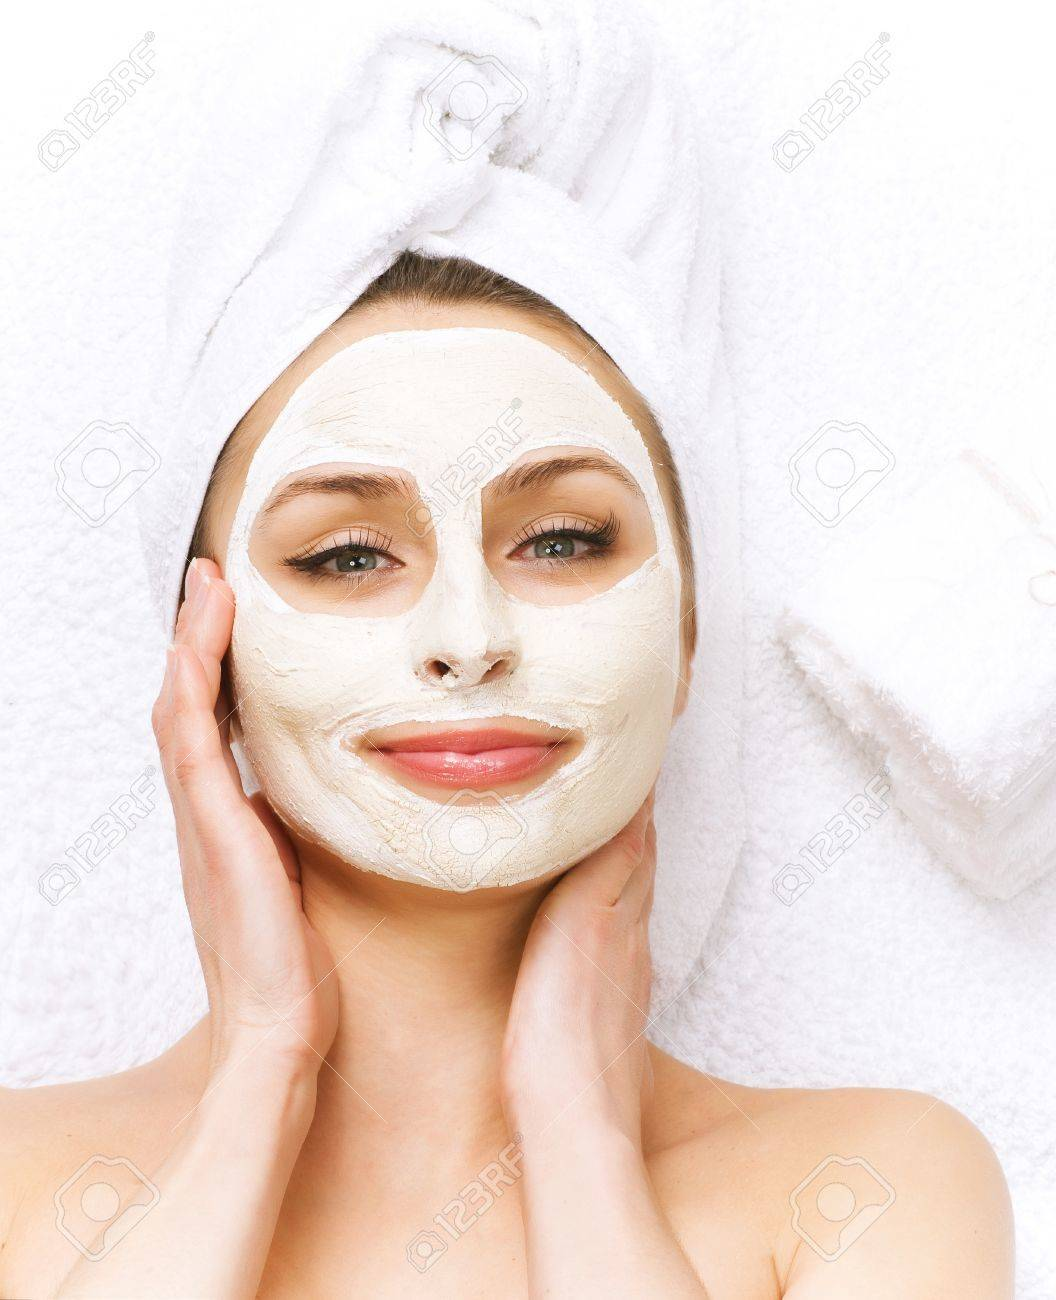 Spa Facial Mask Dayspa Concept Stock Photo Picture And Royalty Free Image Image 9059084